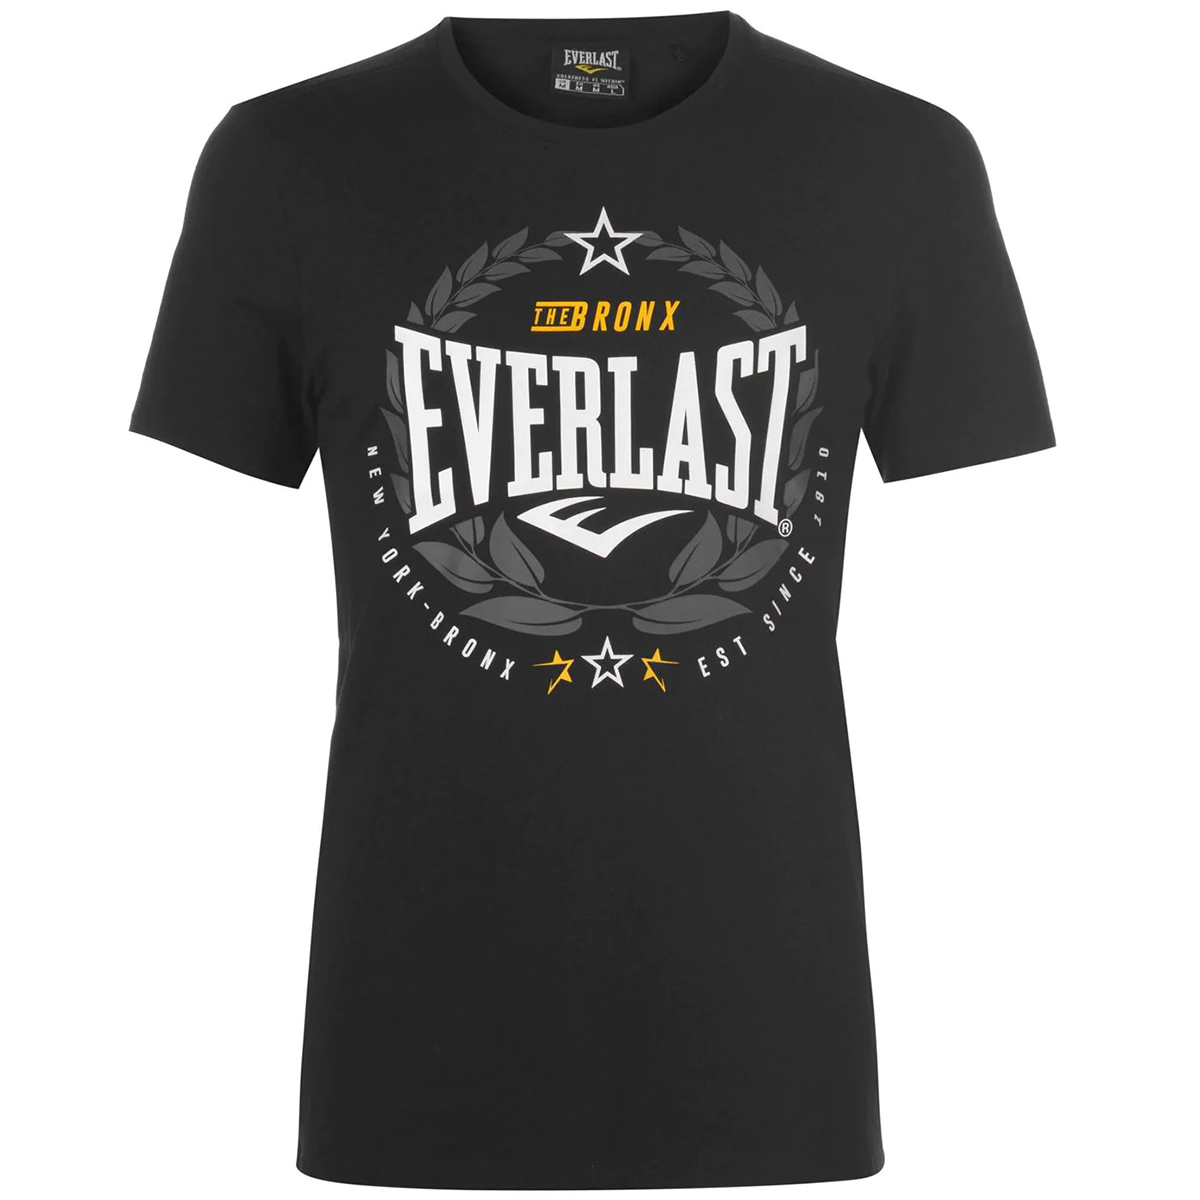 Everlast Men's Laurel Short-Sleeve Tee - Black, XL